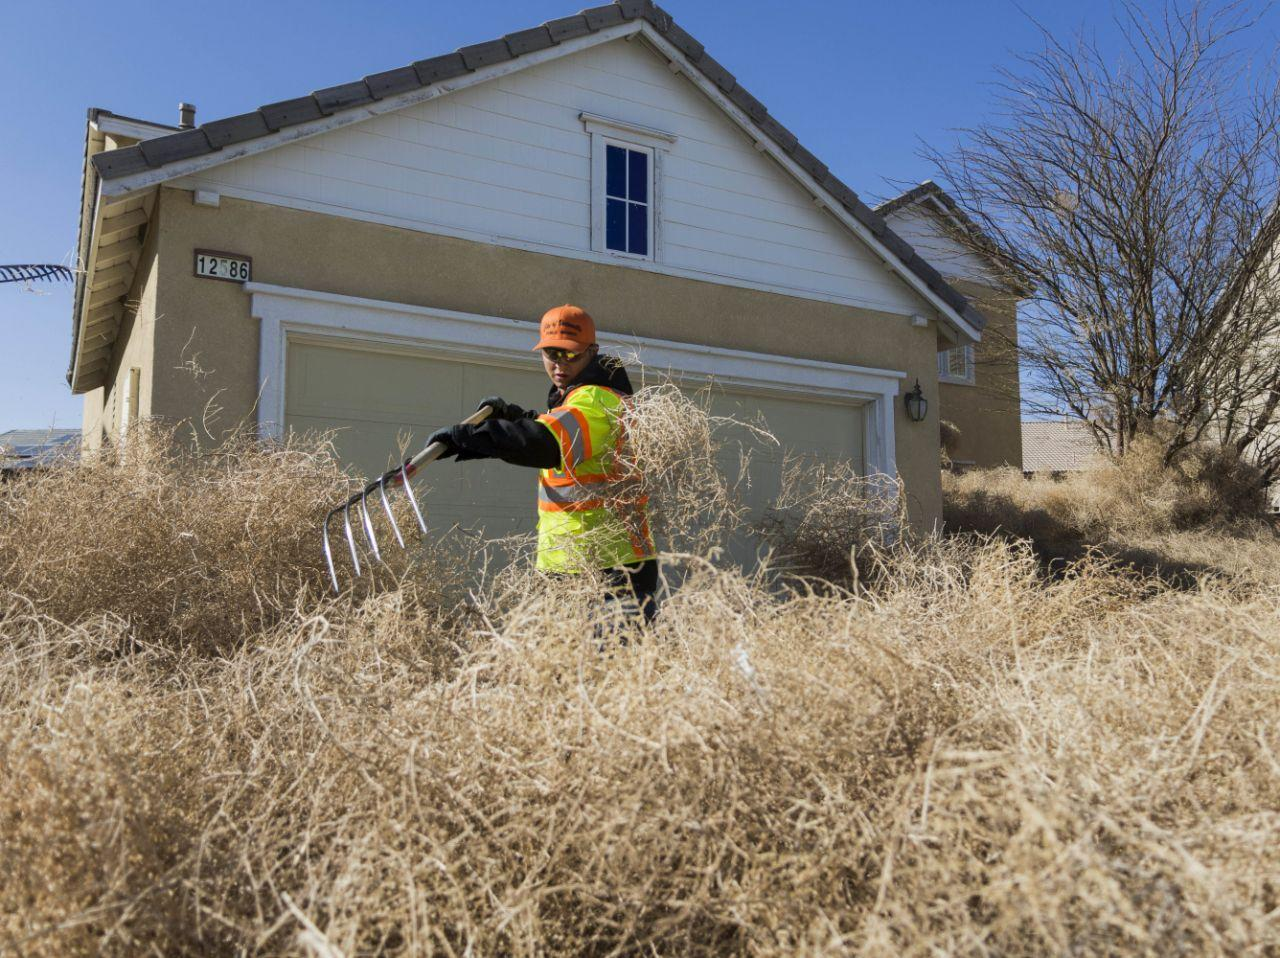 Tumbleweeds take over California town, so residents call 911